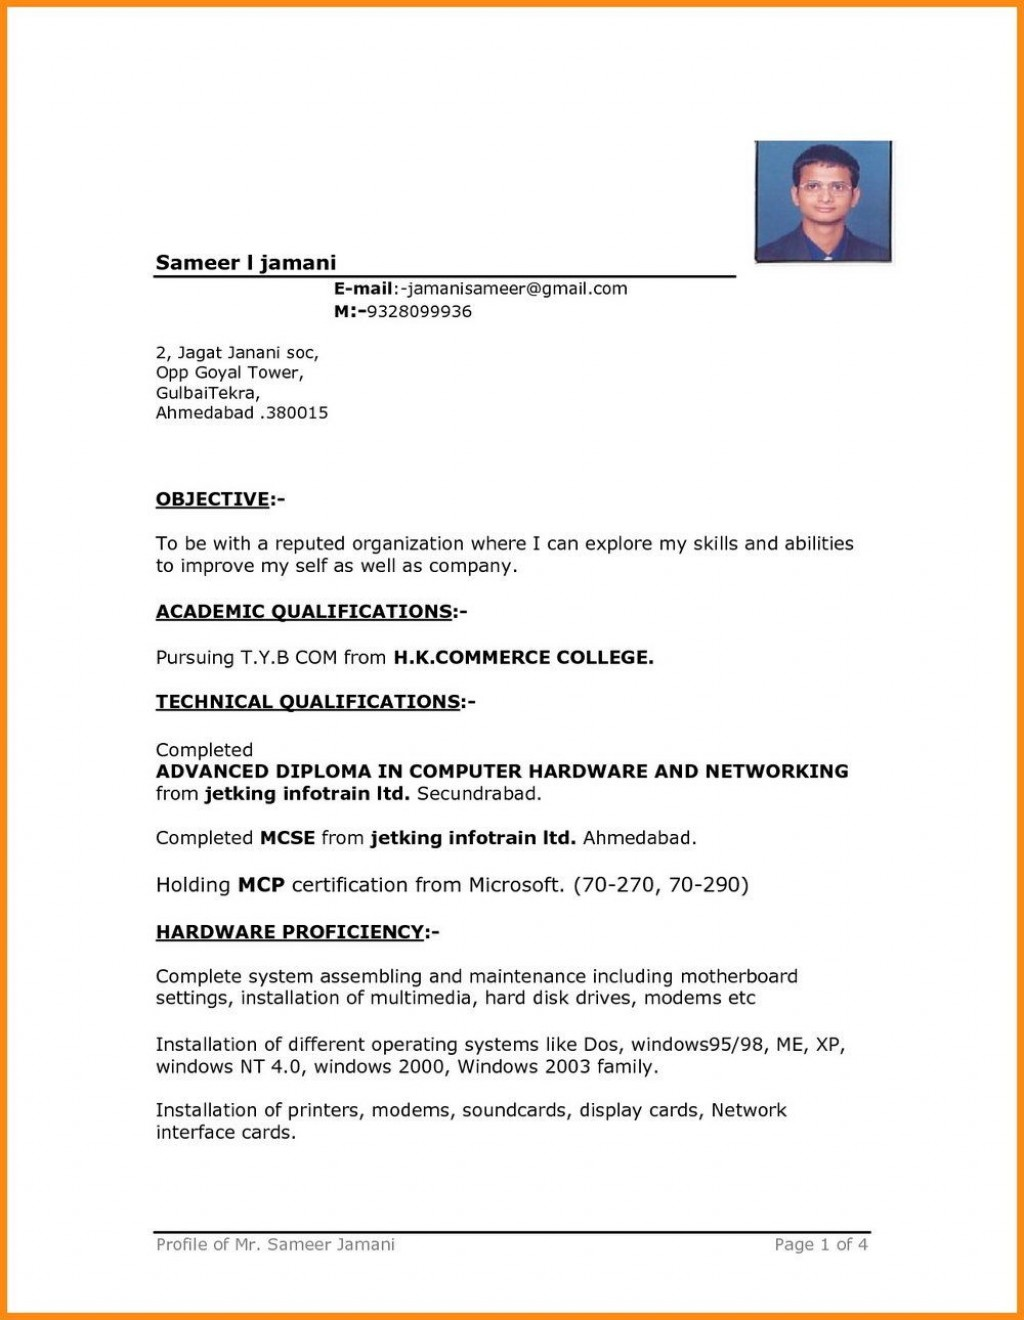 005 Unbelievable Free Blank Resume Template Word Image  Downloadable M For MicrosoftLarge